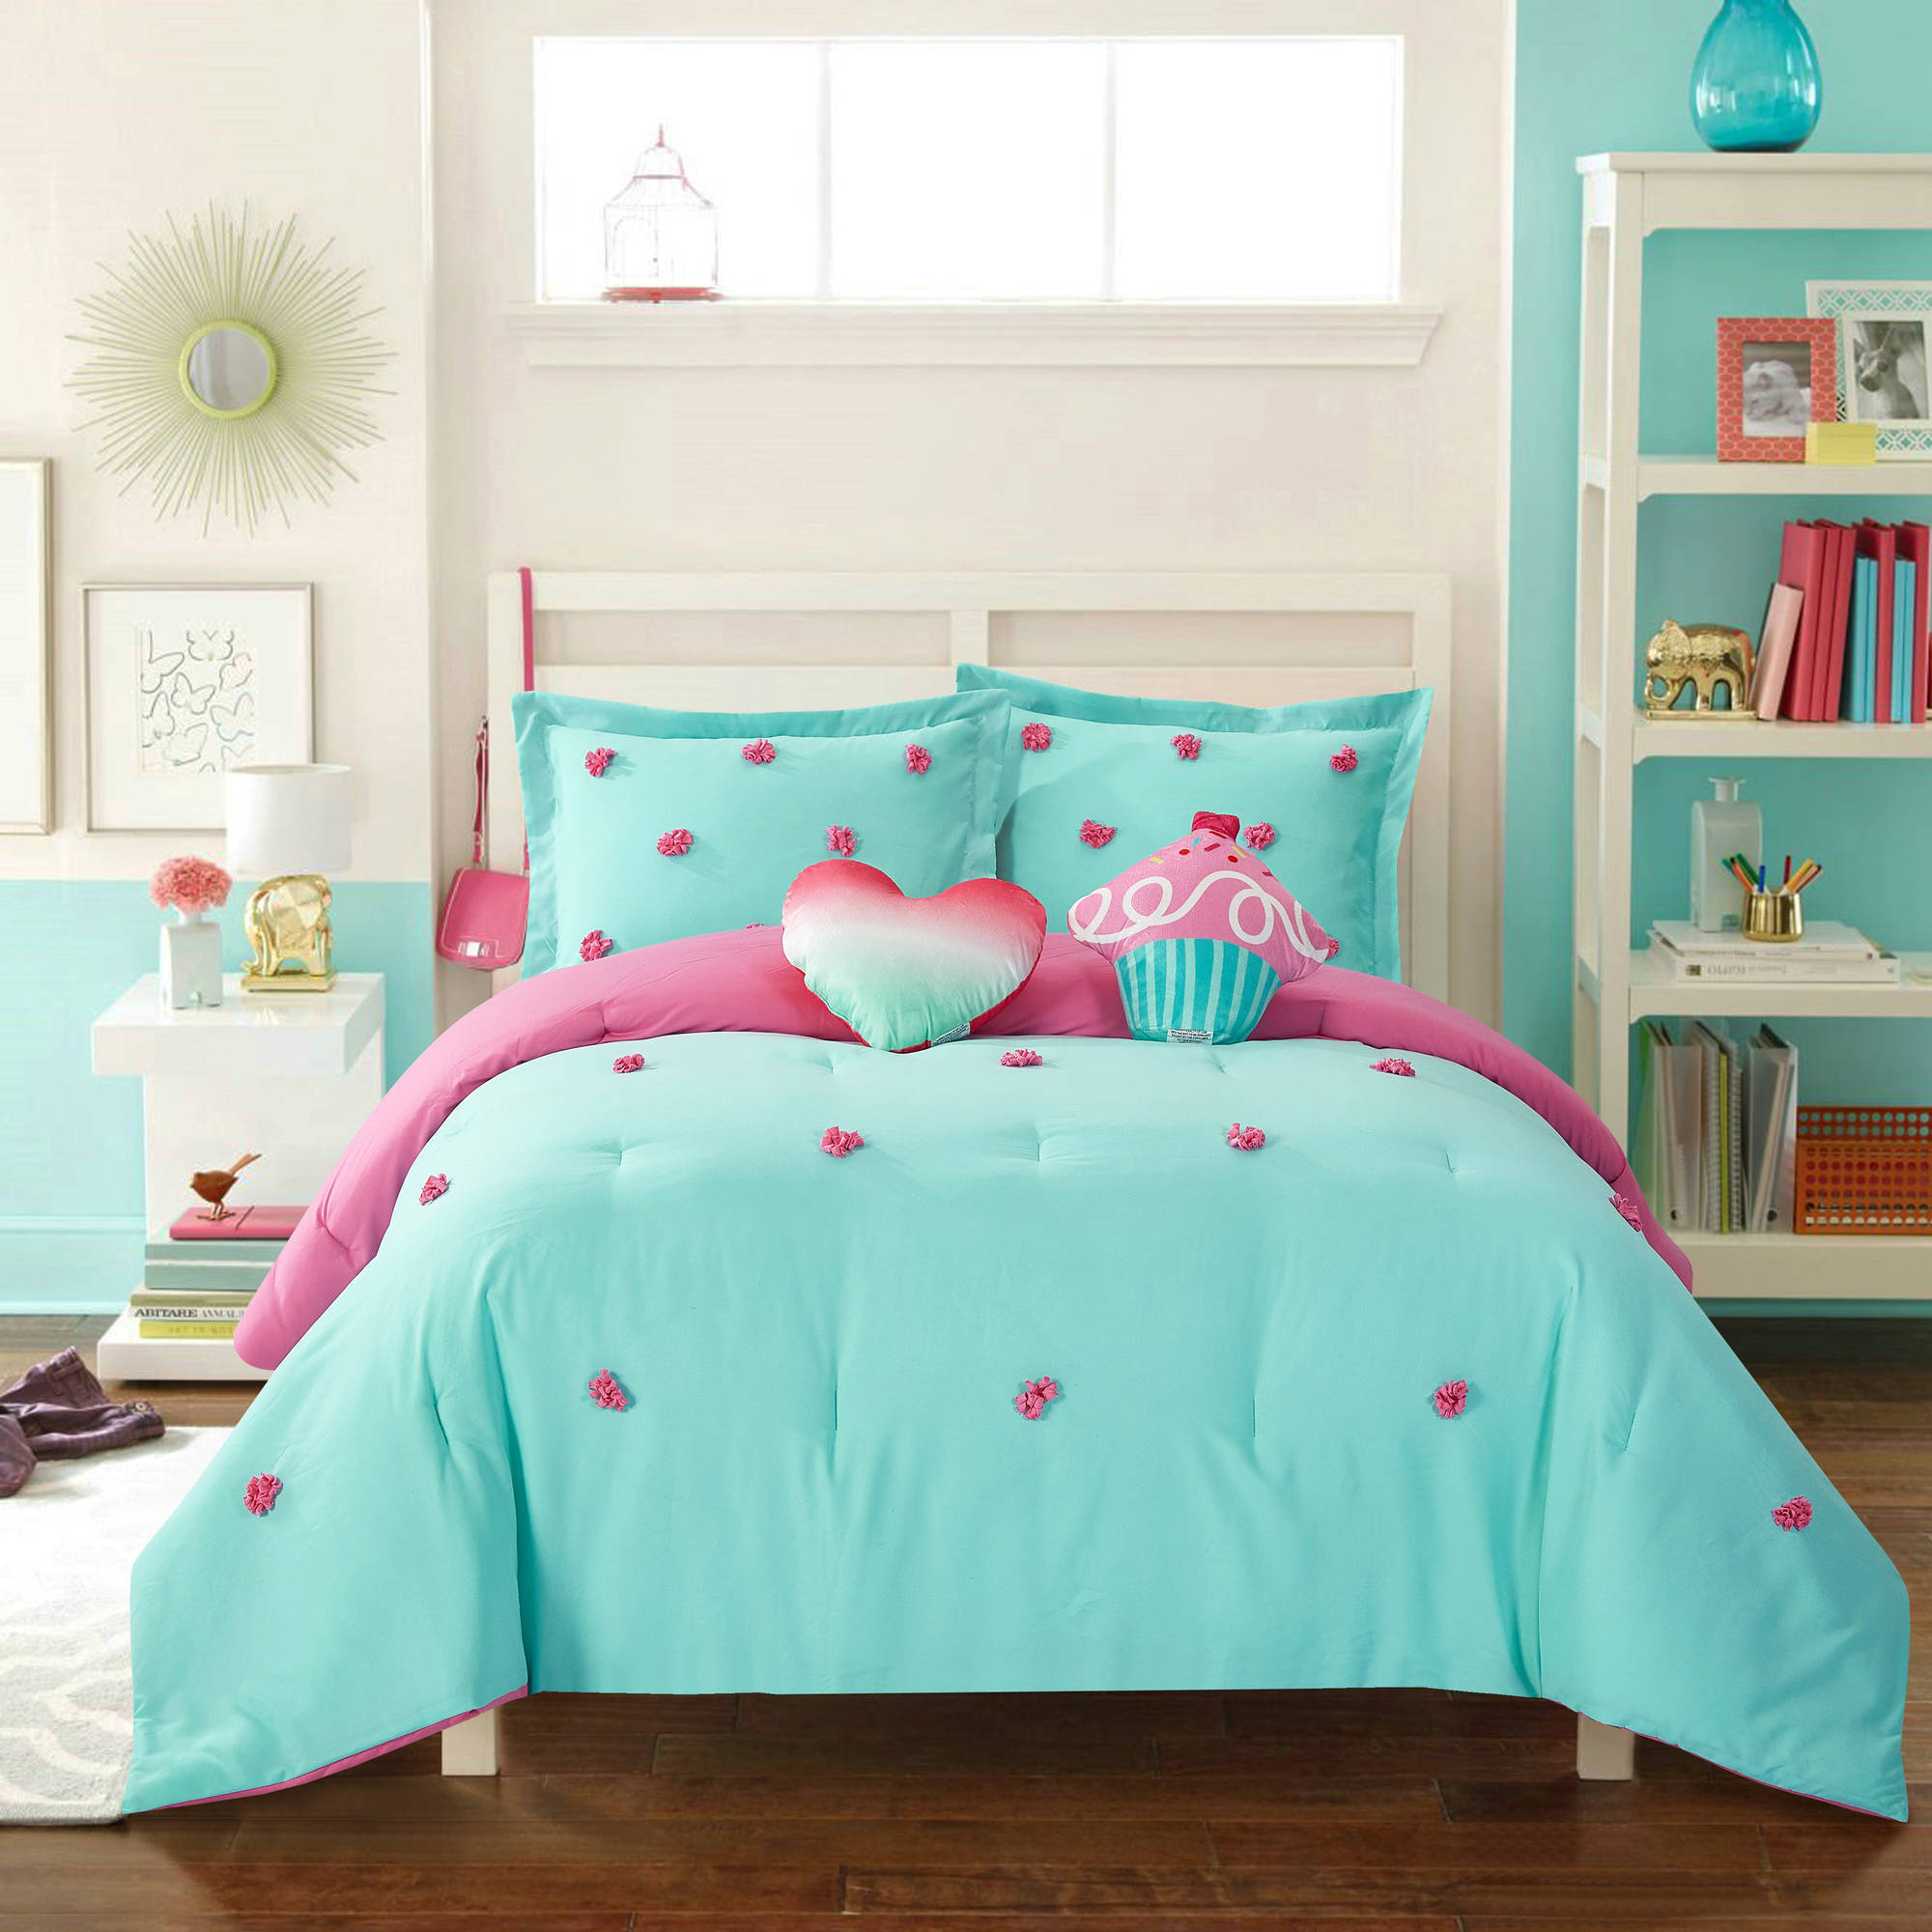 Better Homes & Gardens Kids Pom Pom Comforter Set